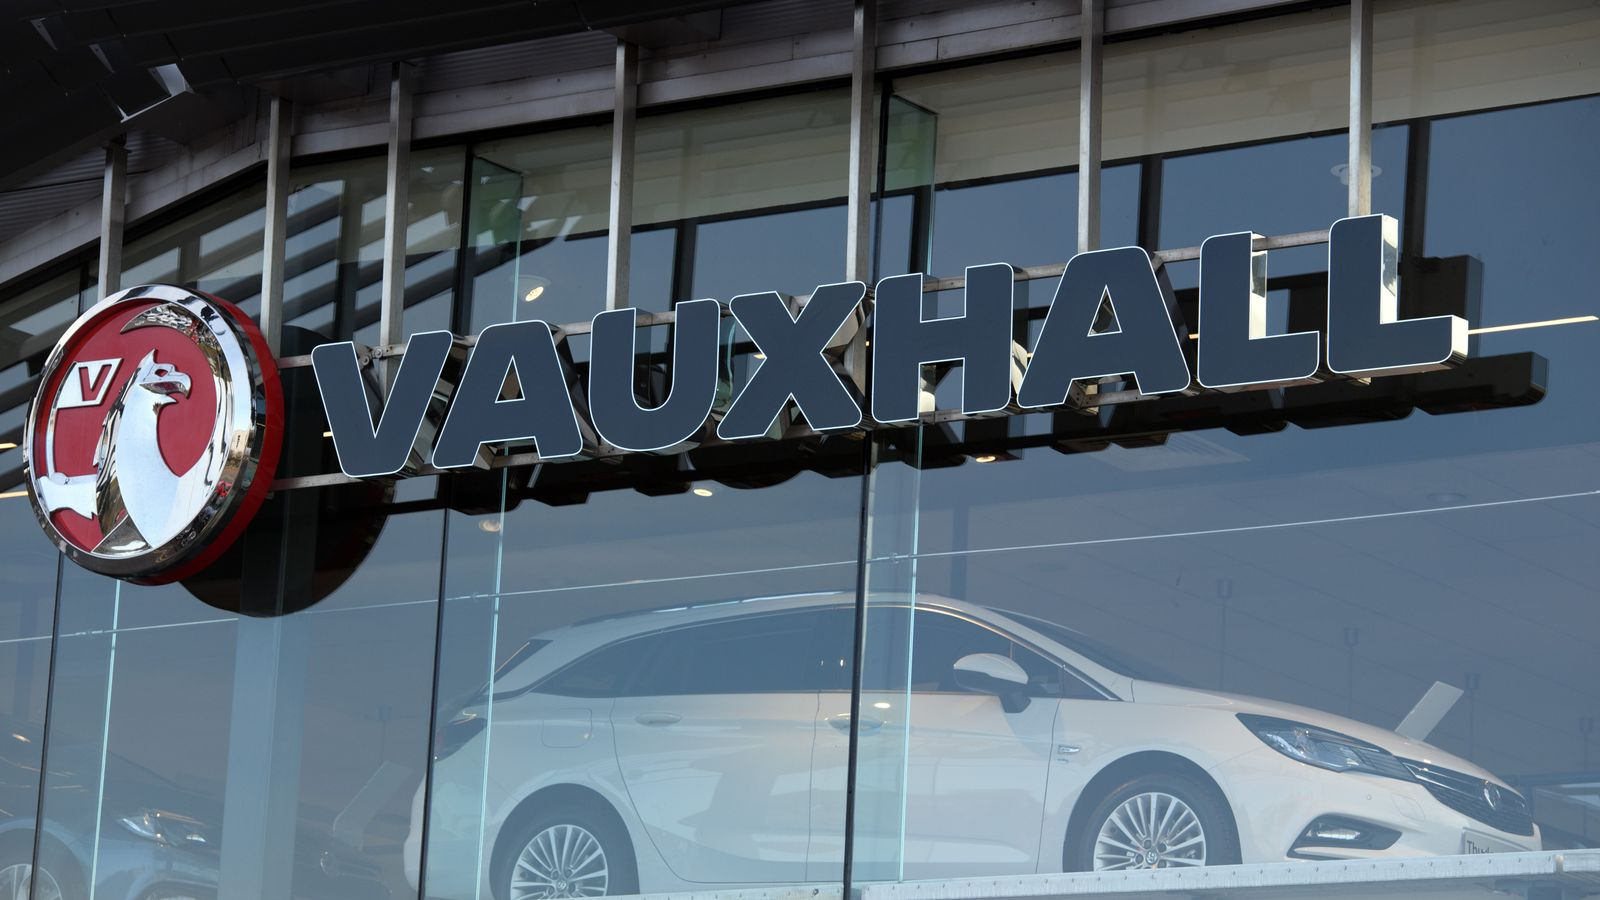 Vauxhall's owner and Fiat Chrysler agree $50bn merger deal - EpicNews